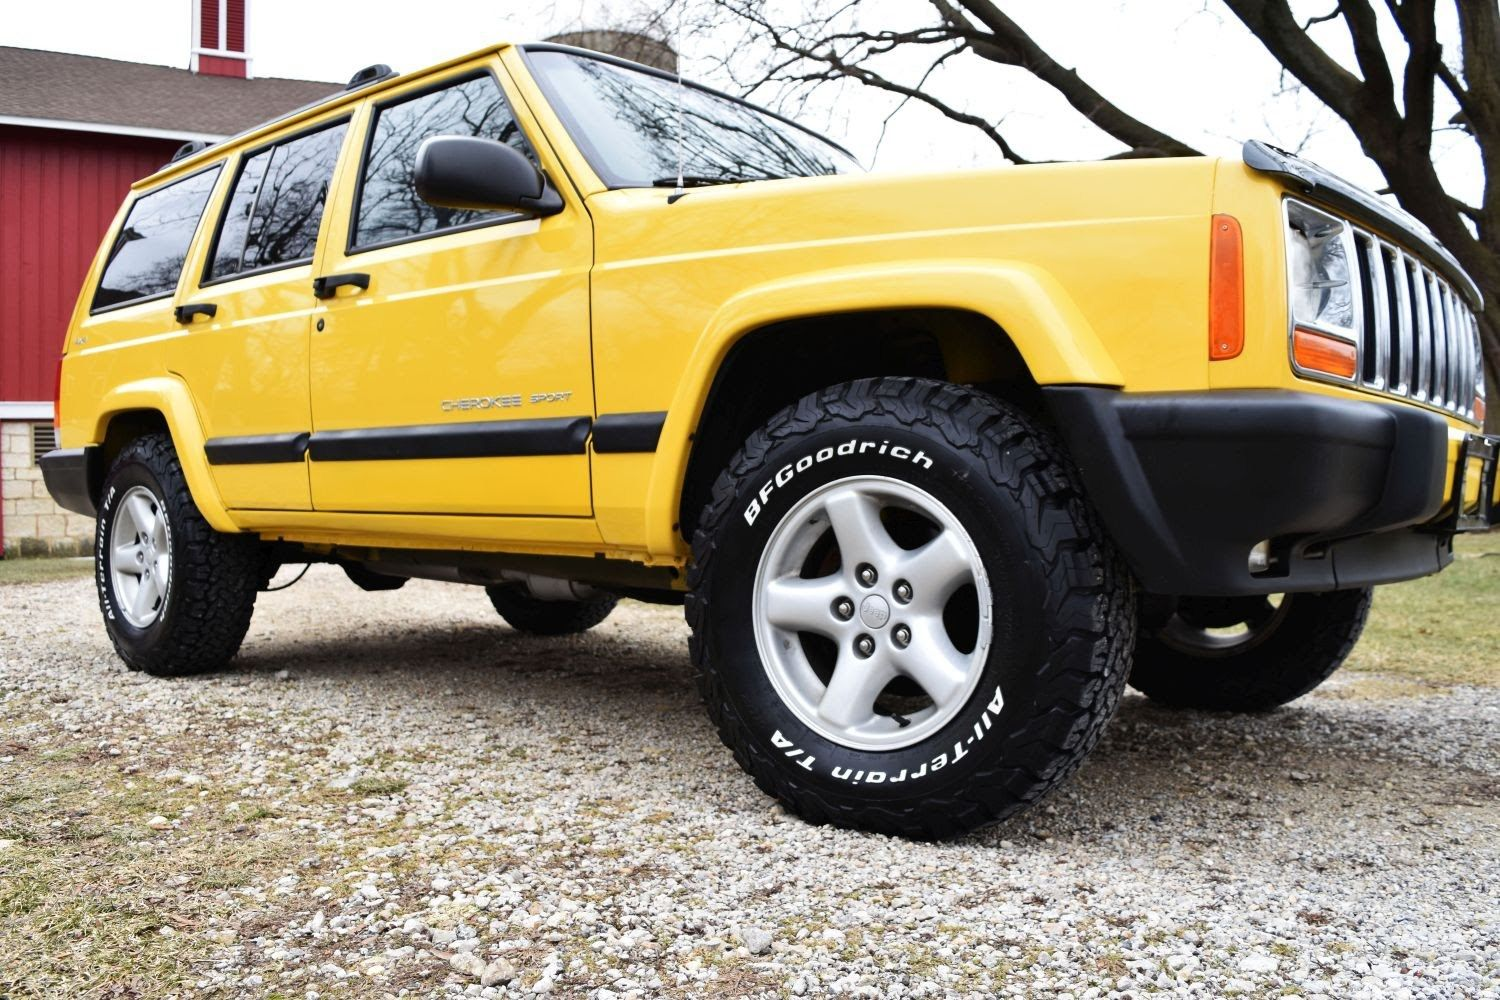 Image Result For Yellow Jeep Xj Yellow Jeep Jeep Xj Jeep Cherokee